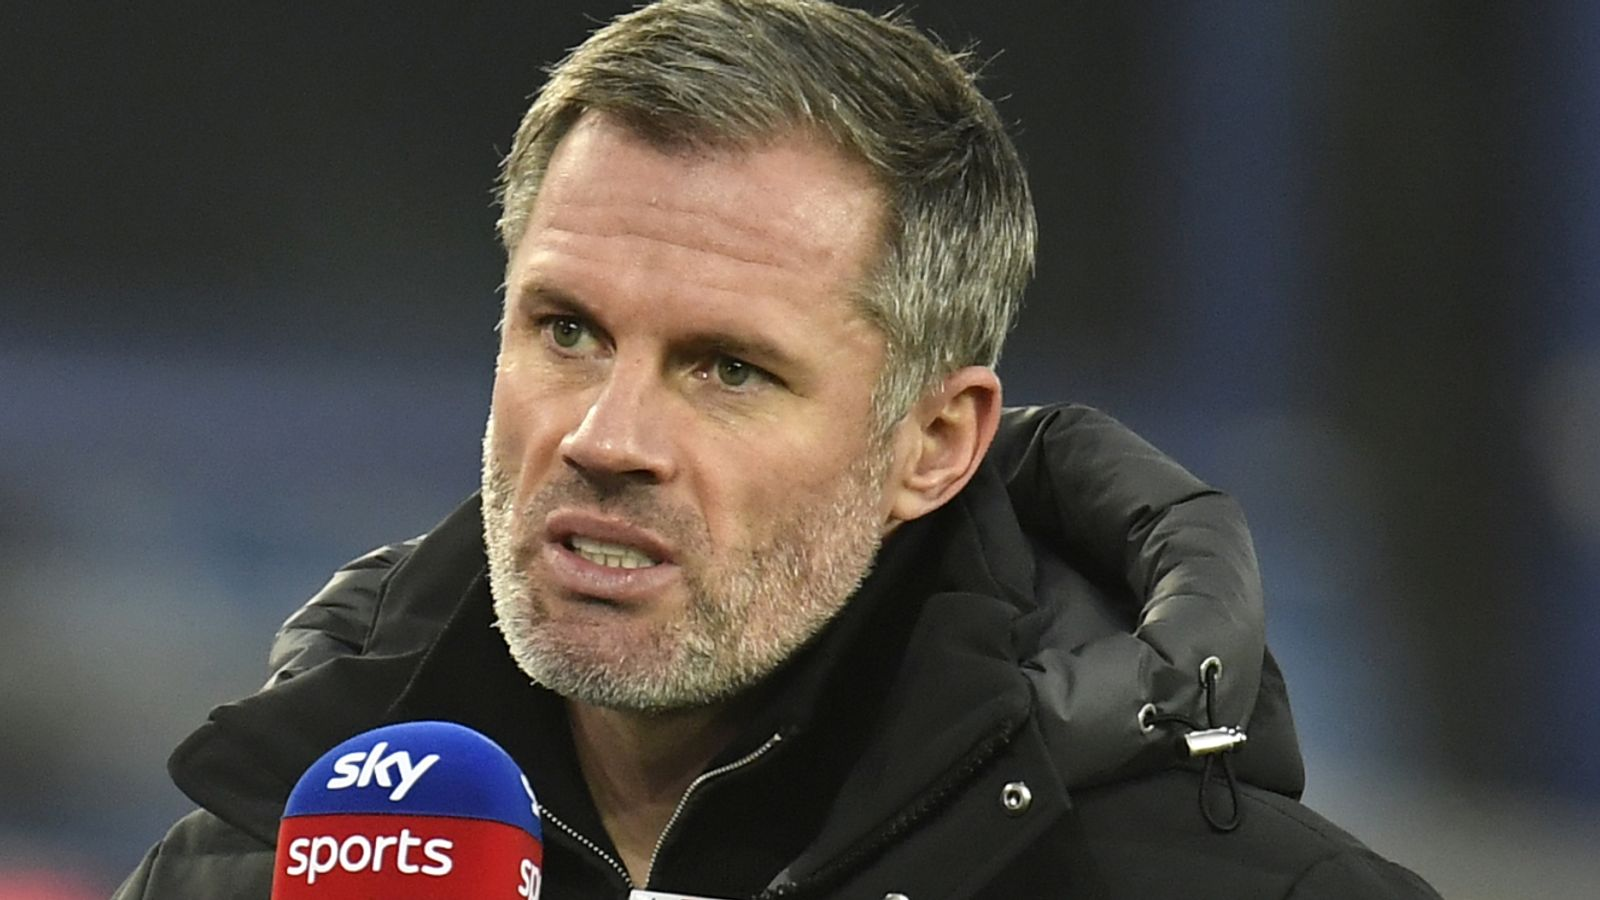 Former soccer player and pundit, Jamie Carragher giving a post-match analysis on Sky Sports.